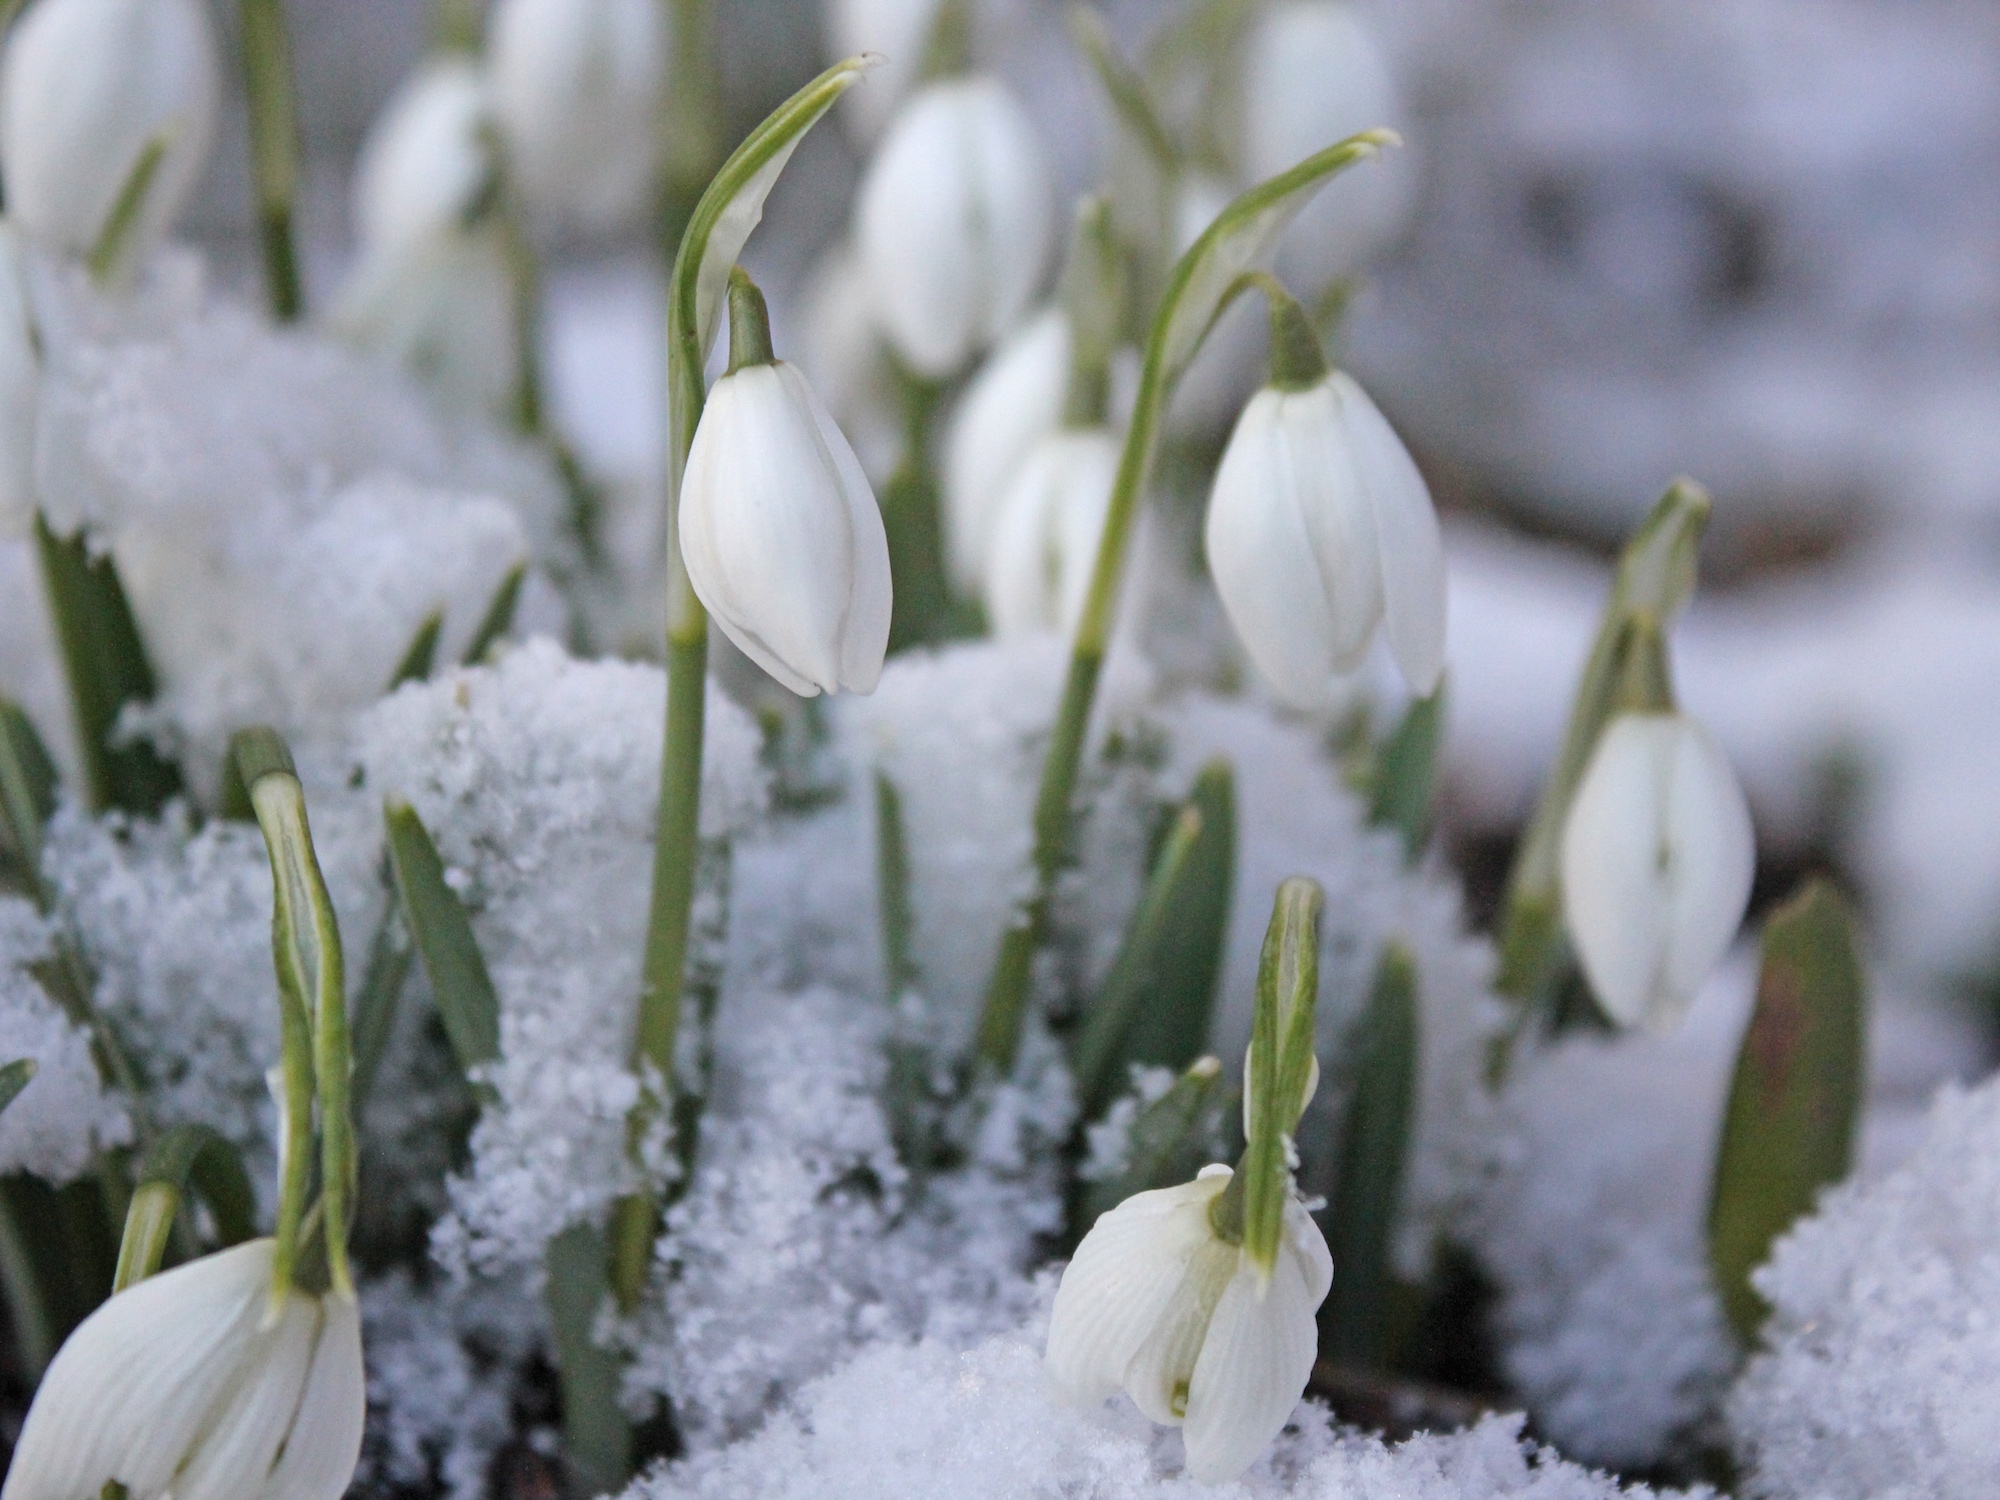 Snowdrops piercing snow cover.